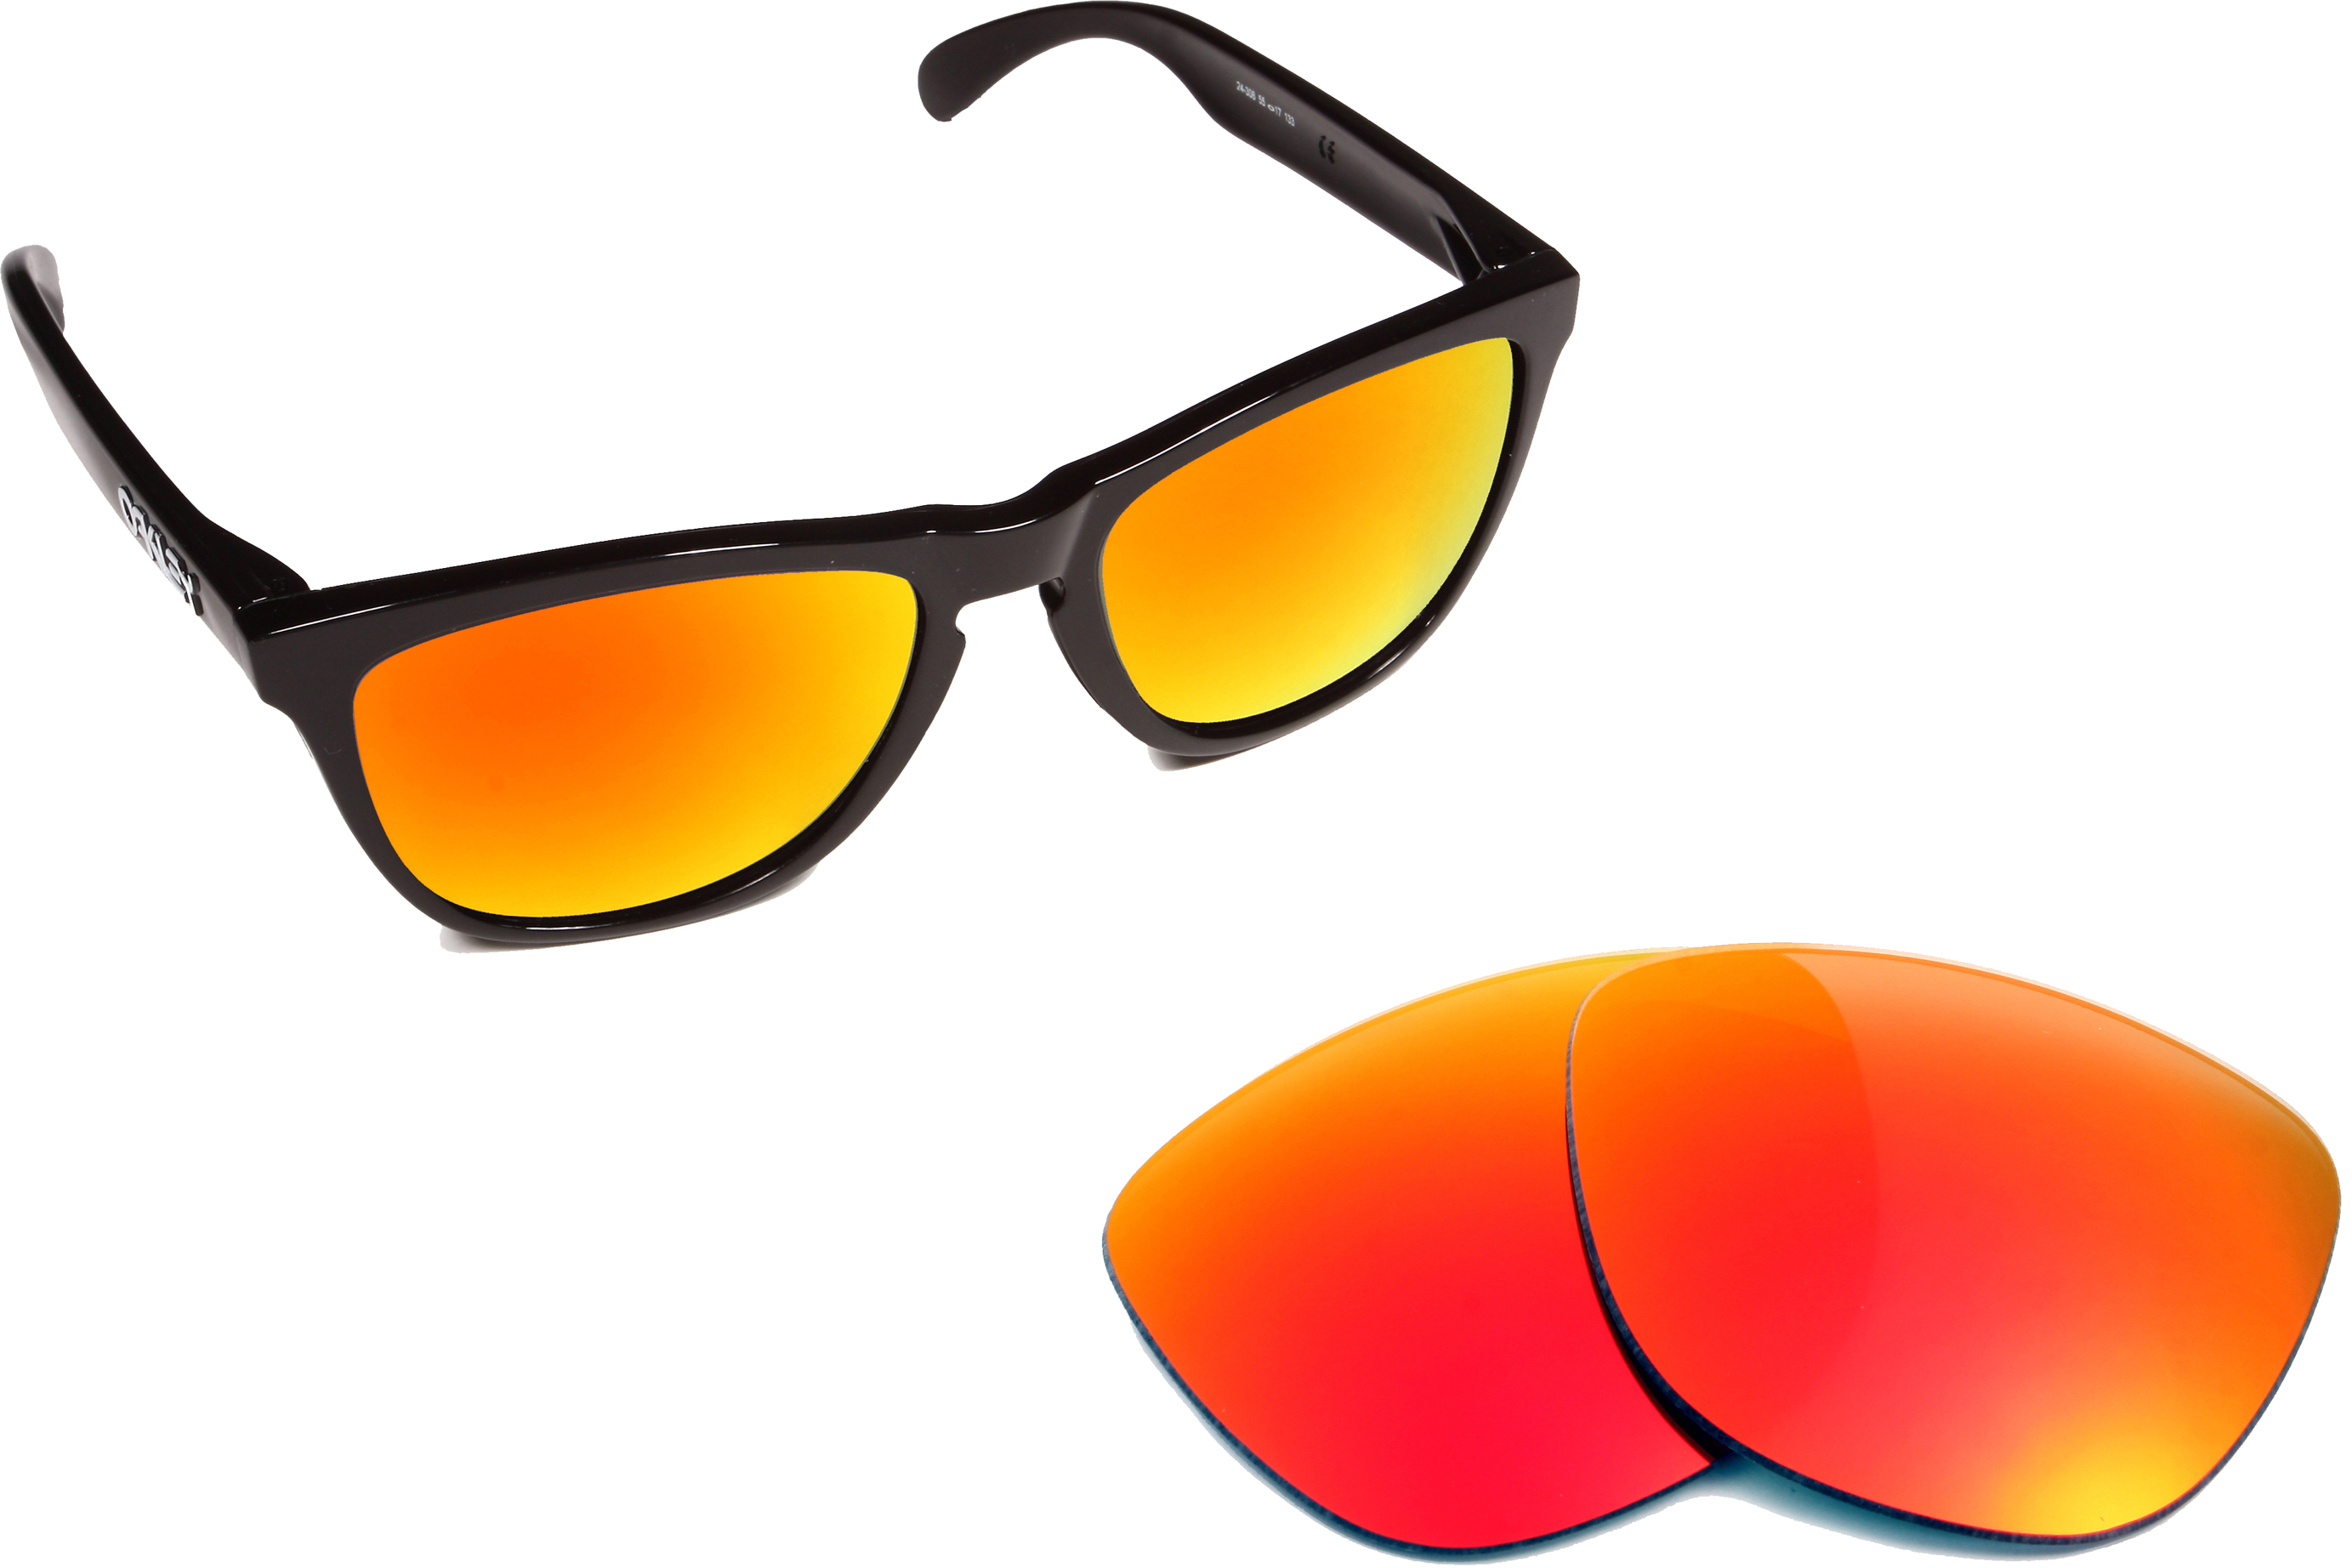 c4e30ea575 Frogskins Replacement Lenses Polarized Red Mirror by SEEK fits OAKLEY  Sunglasses